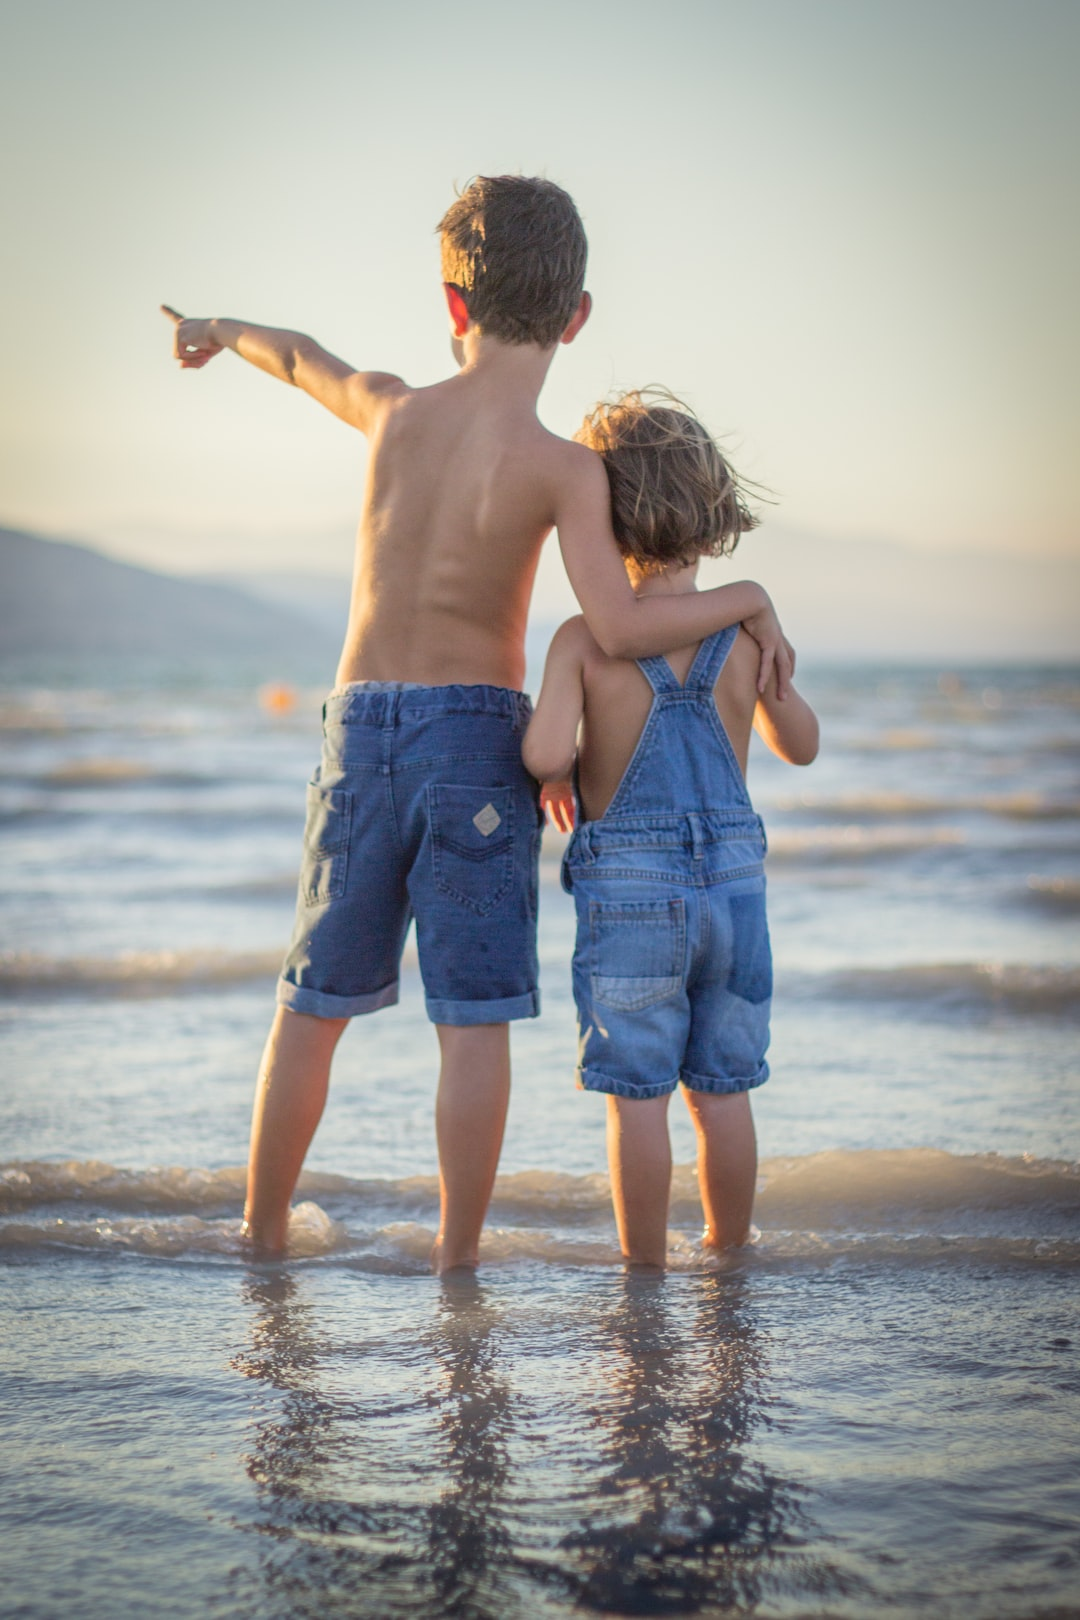 We were on a family vacation and I managed to convince my 6 and 3-year-old boys to have a short photo session. I am so pleased that they agreed (usually, they really don't like to have me taking their photos, even though they really enjoy the results later)